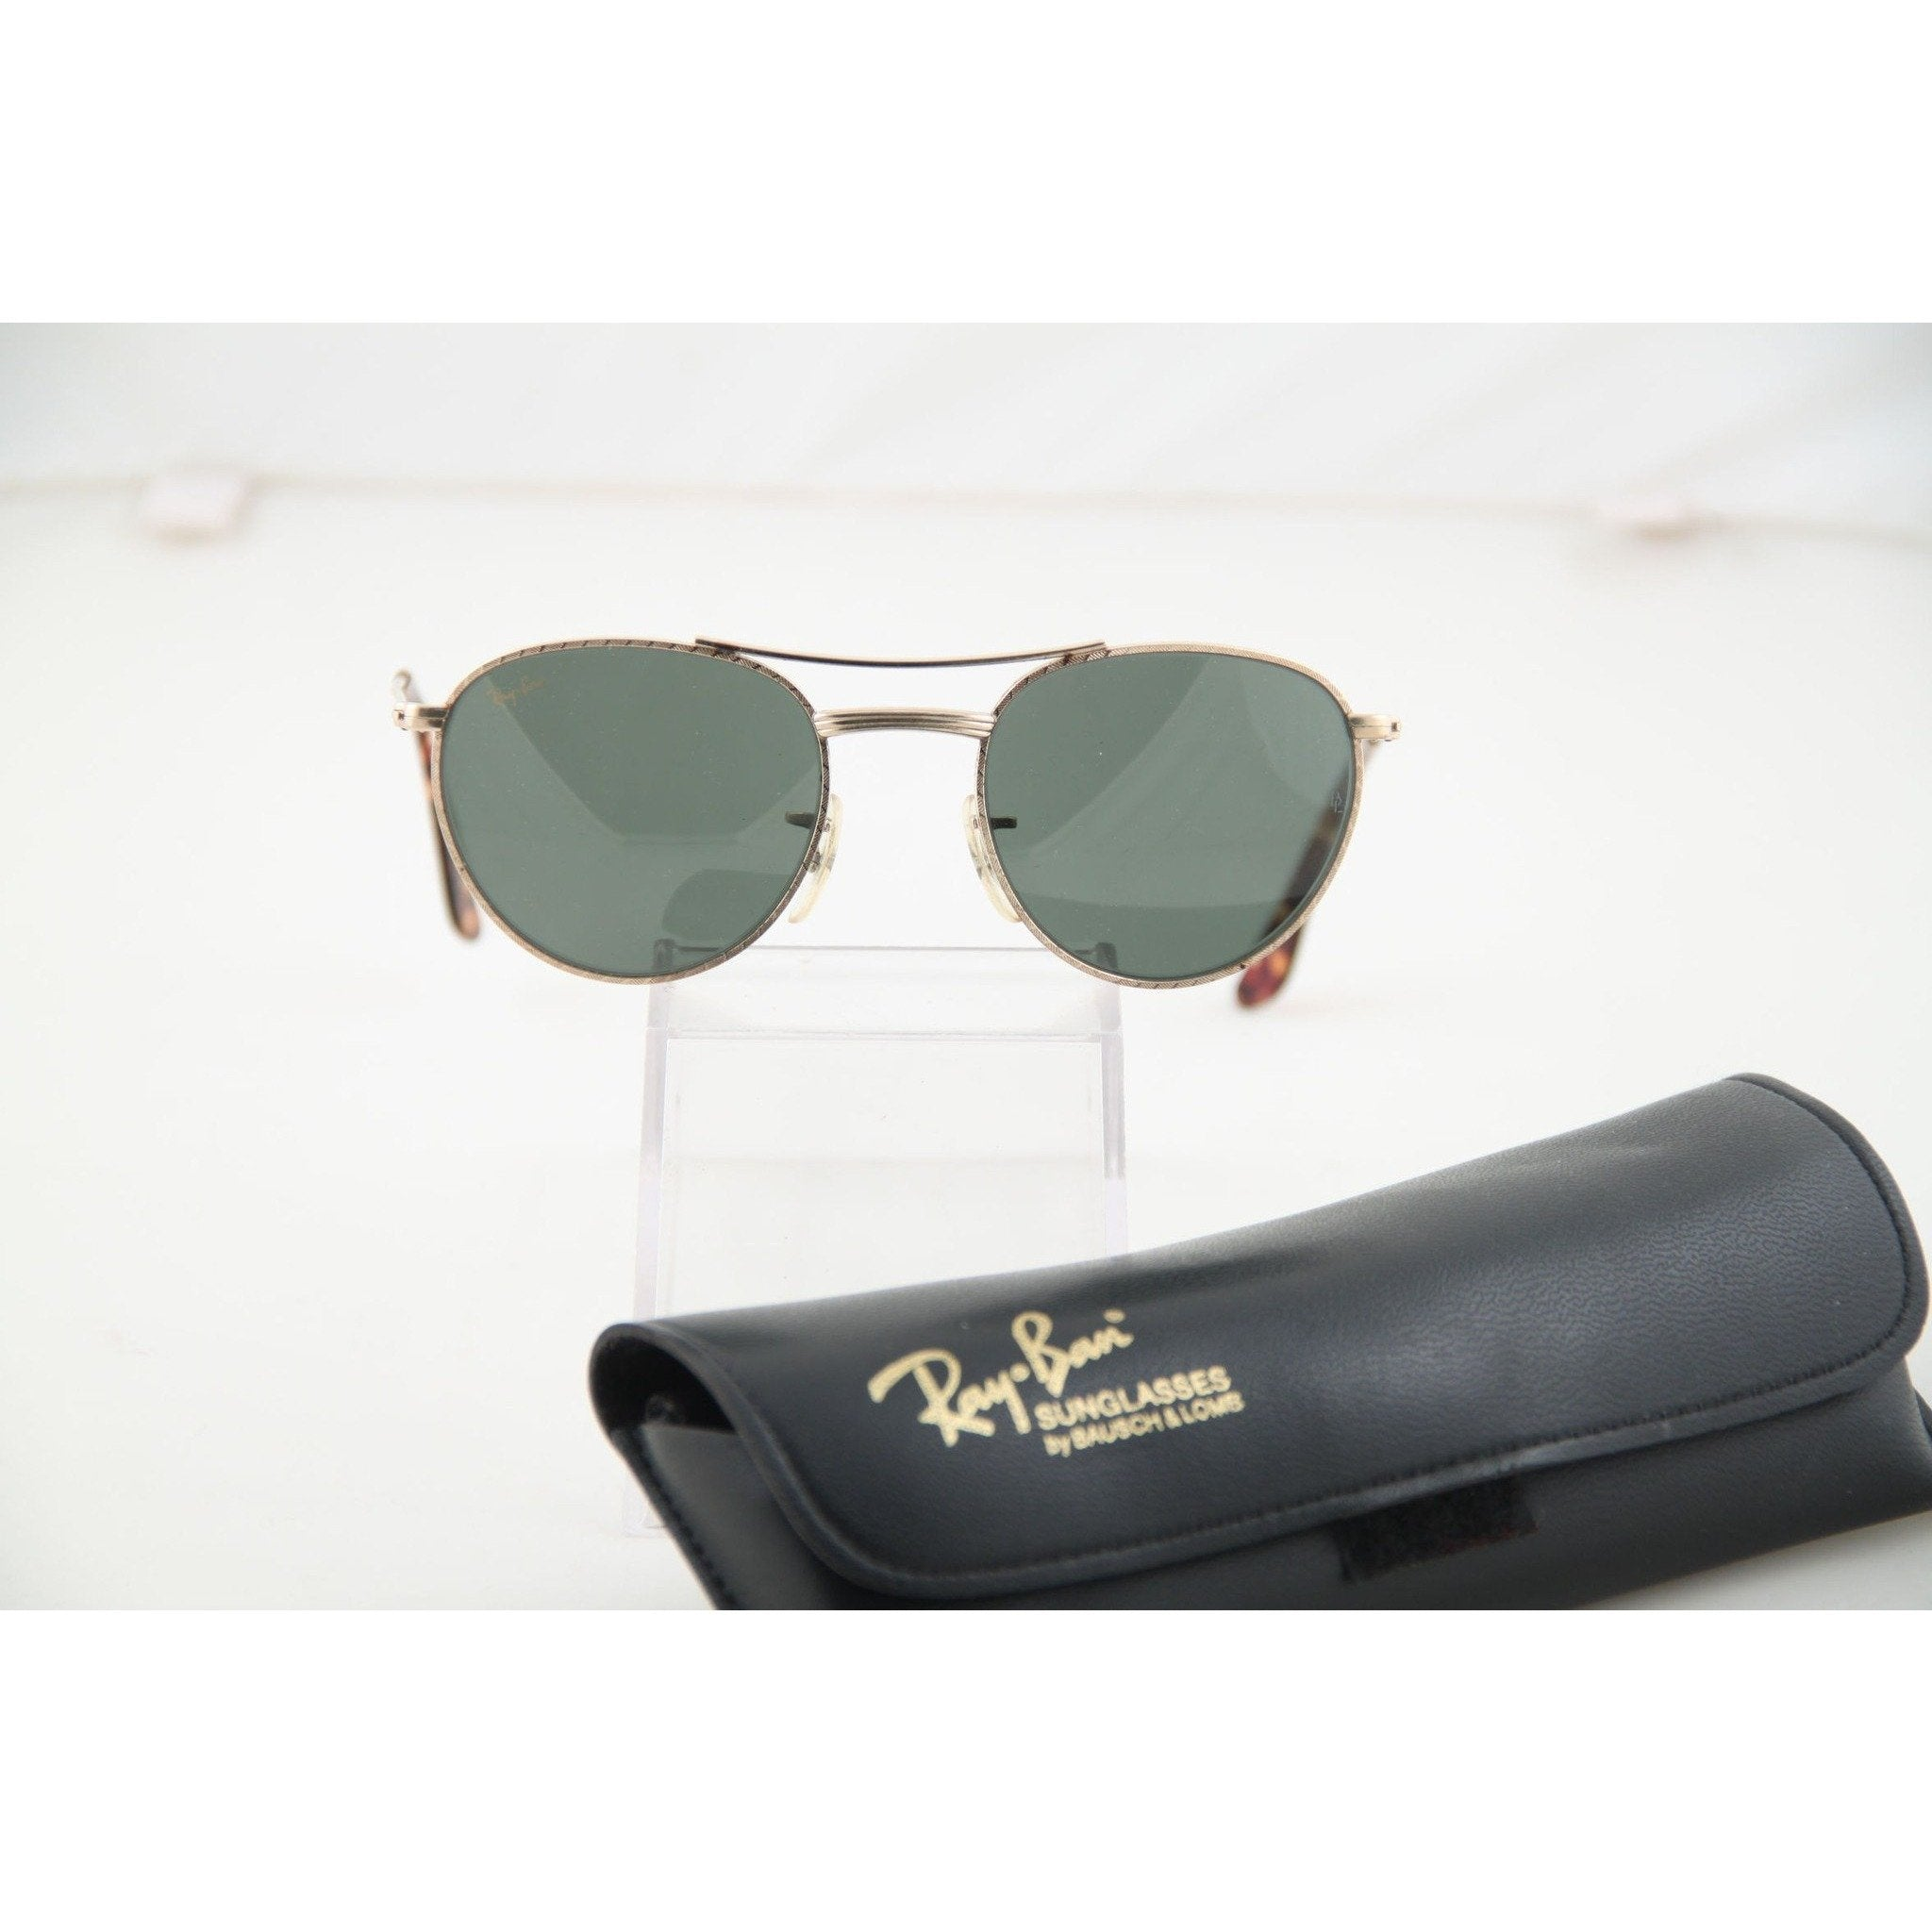 5e162f45ed ... best price ray ban bl vintage sunglasses g 15 lens w1754 gold metal  eyewear w case